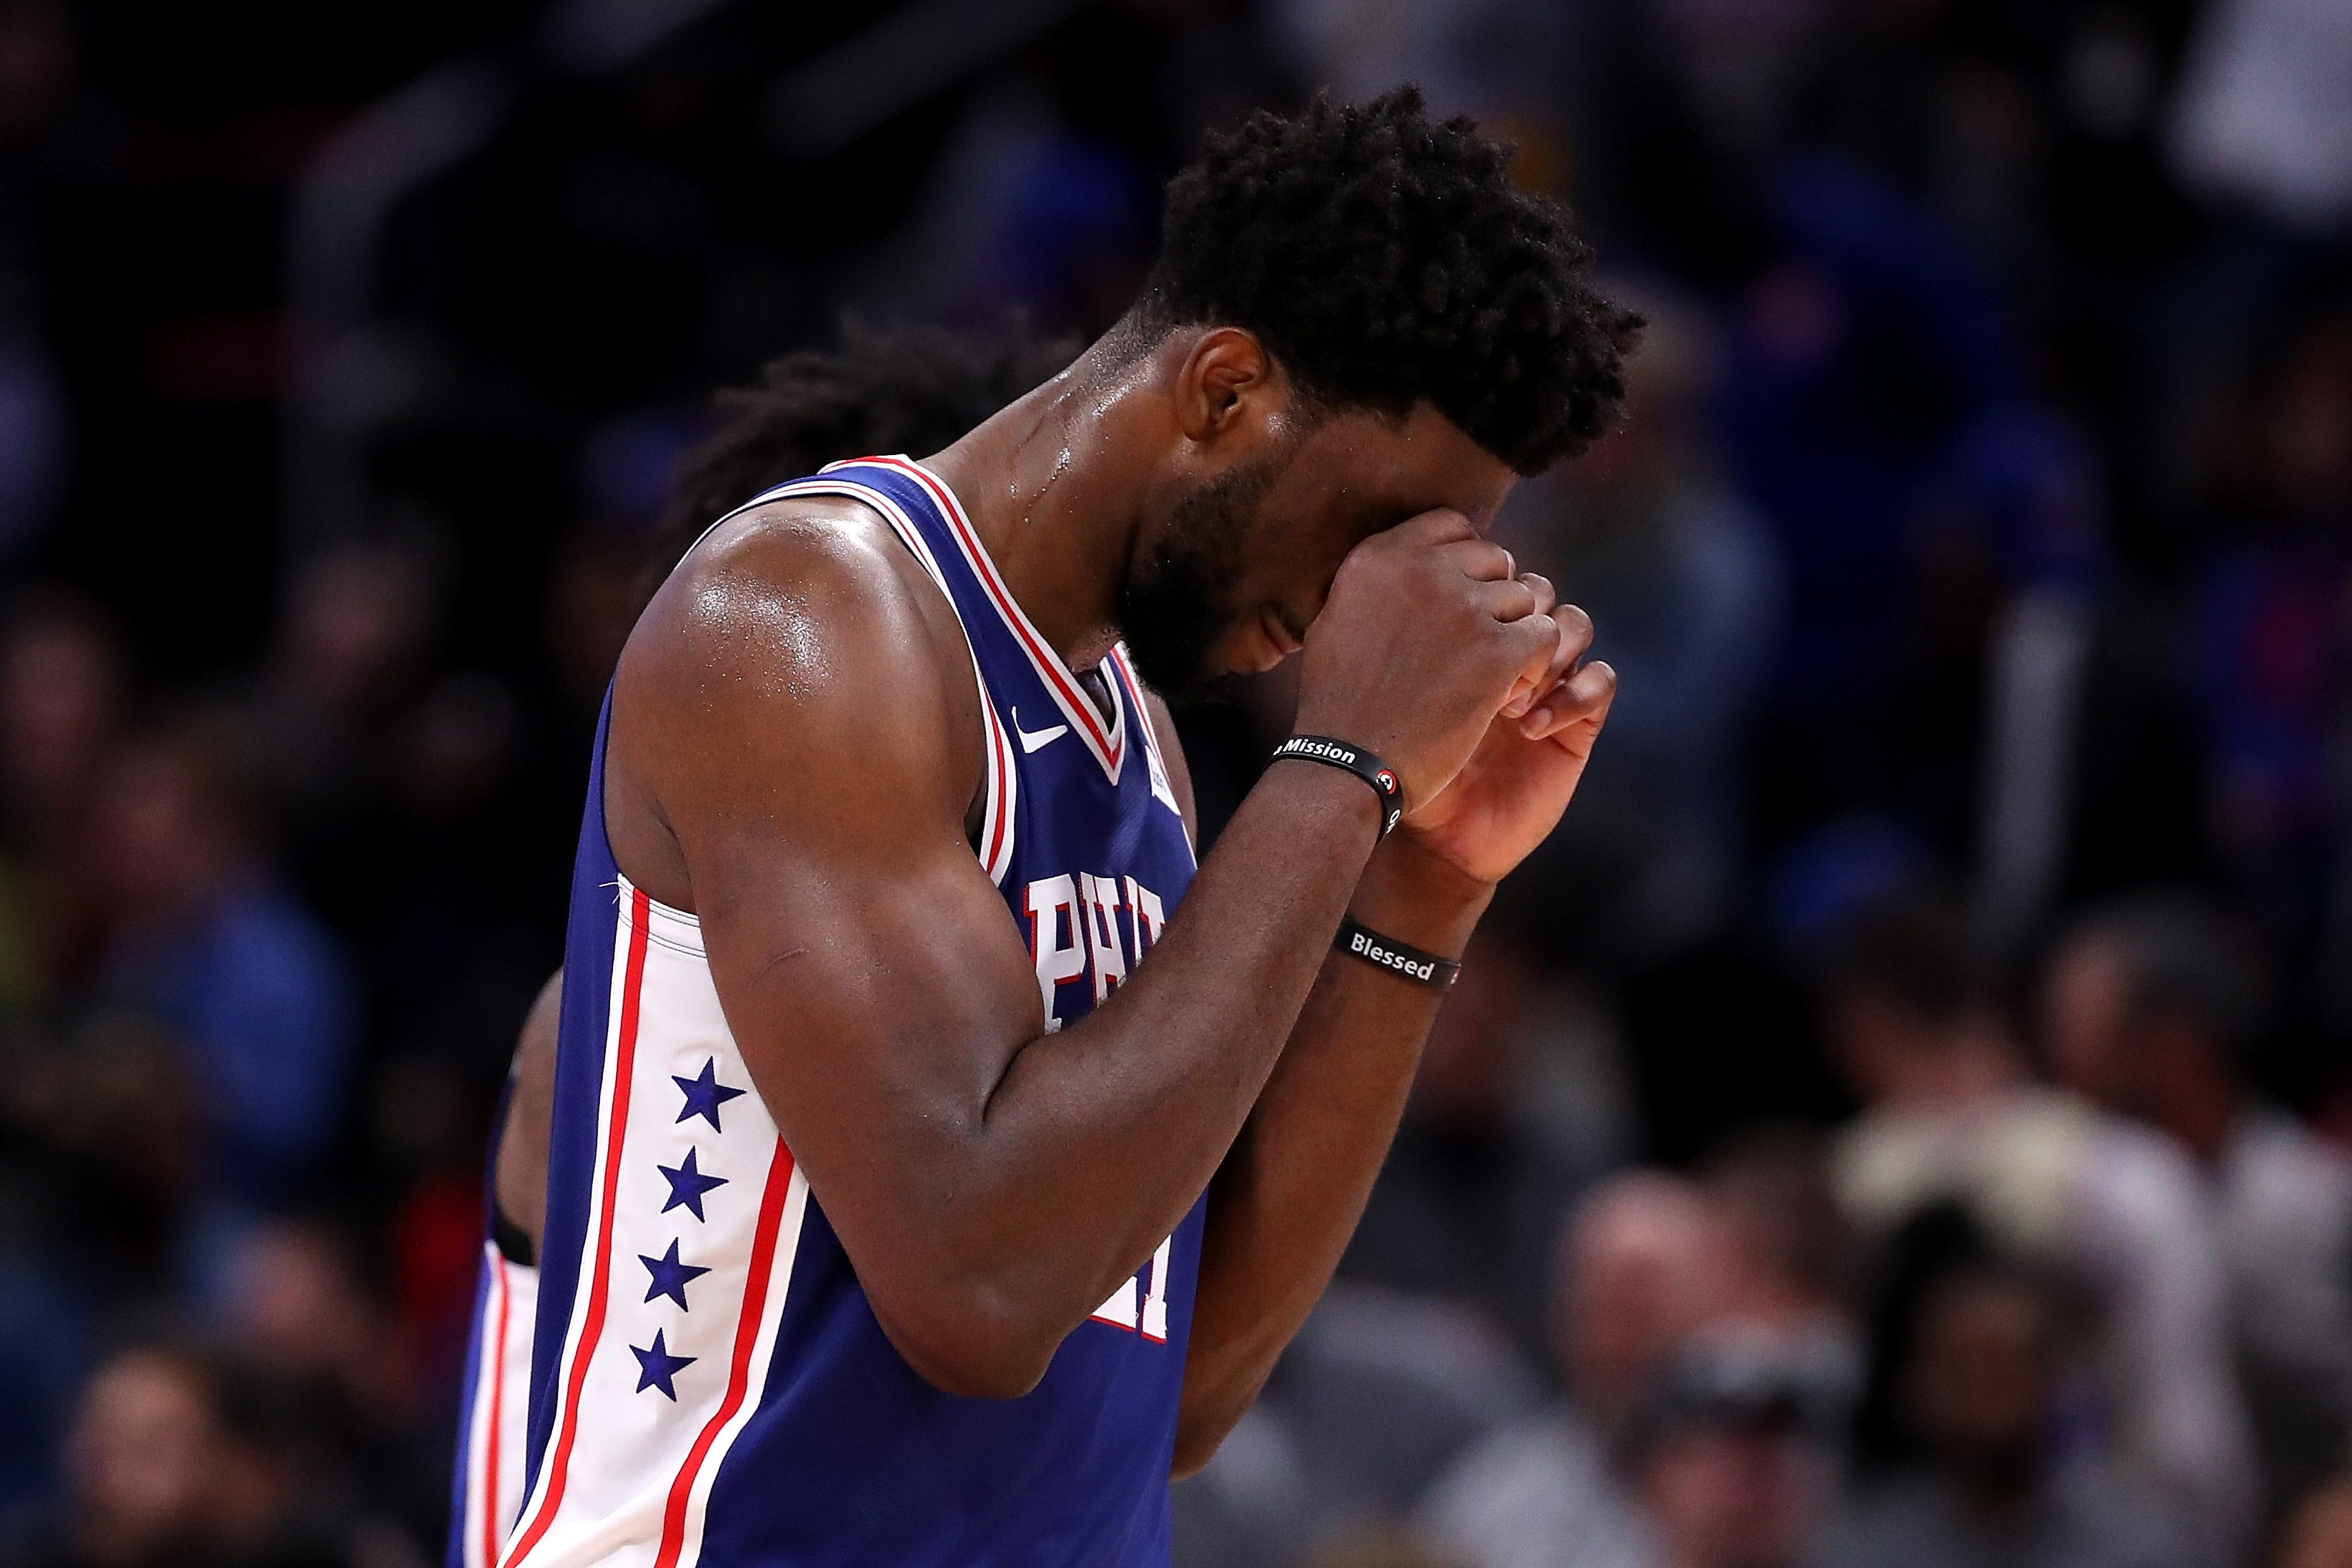 Did Embiid talk refs into ejecting Drummond?